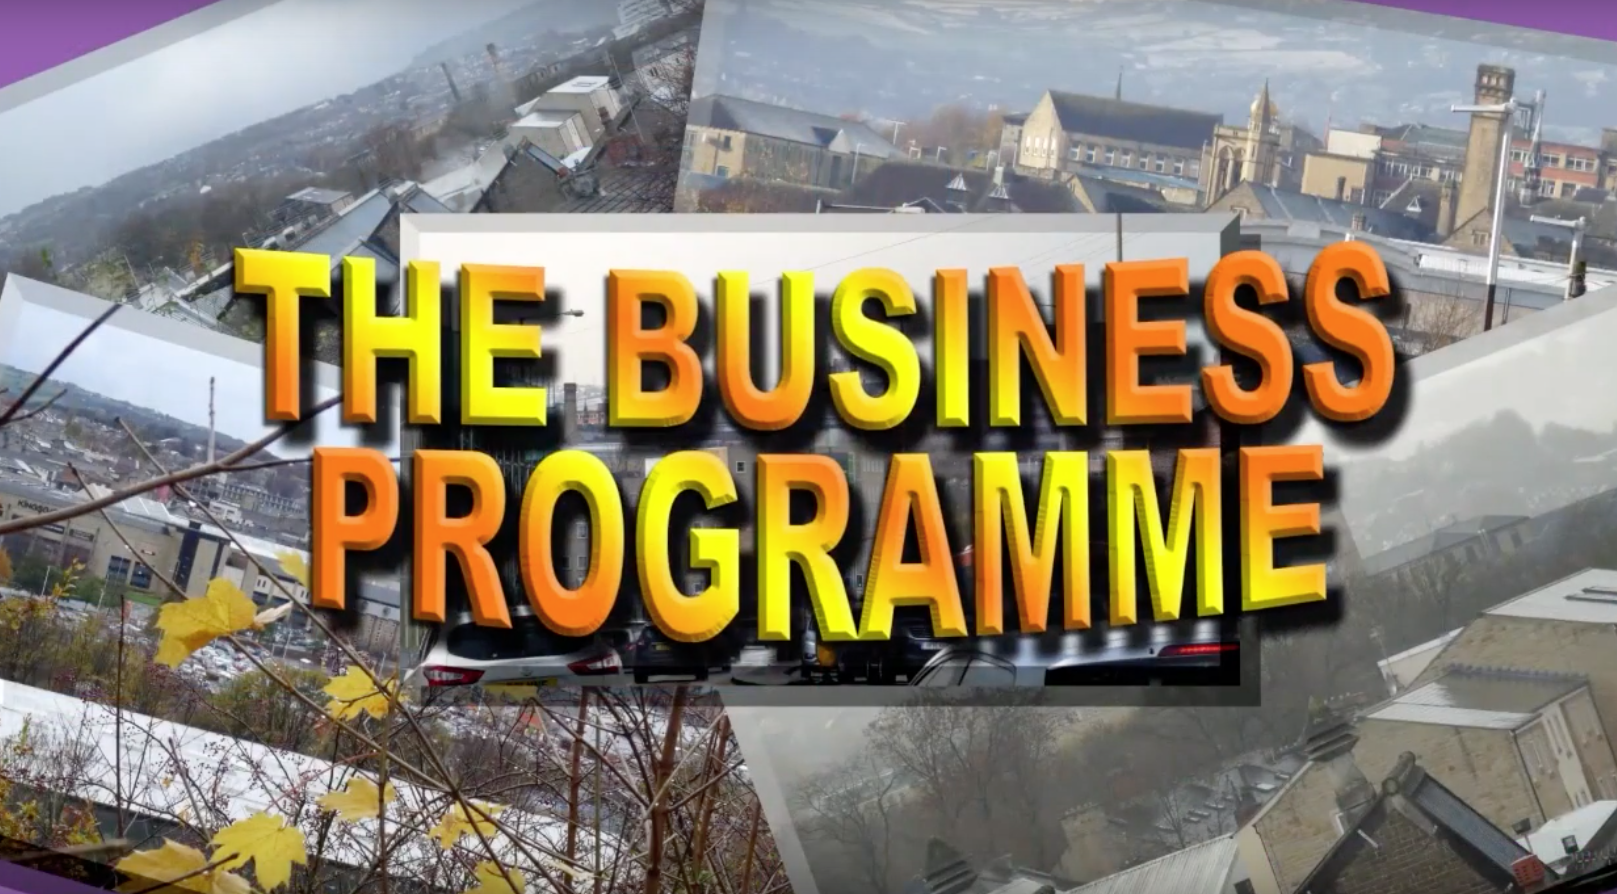 Business Programme Ad